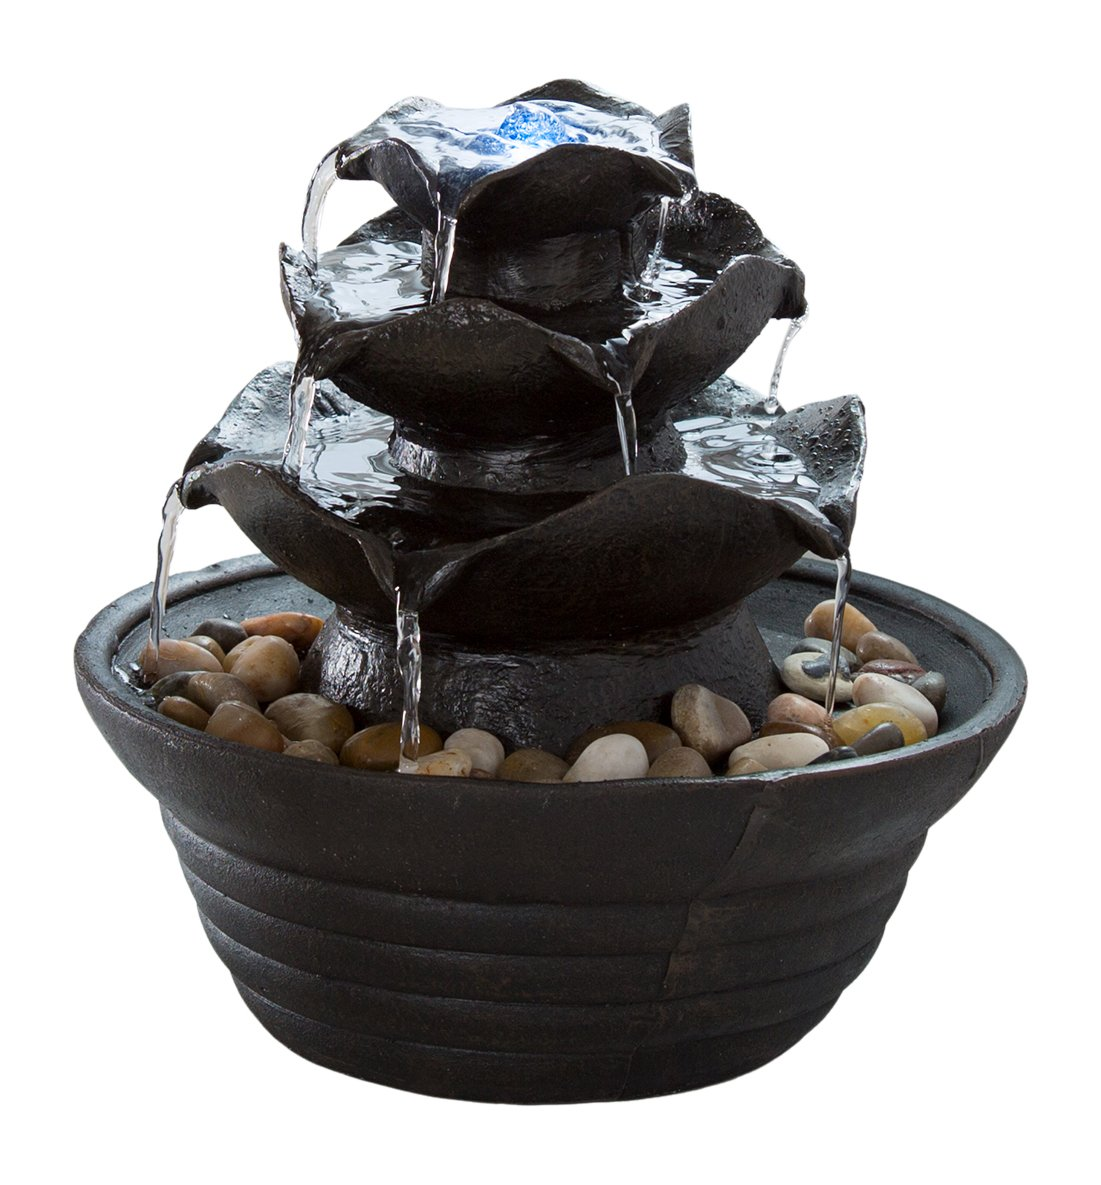 Pure Garden Indoor Water Fountain with LED Lights- Lighted Three Tier Soothing Cascading Tabletop Fountain with Rocks for Office and Home Décor